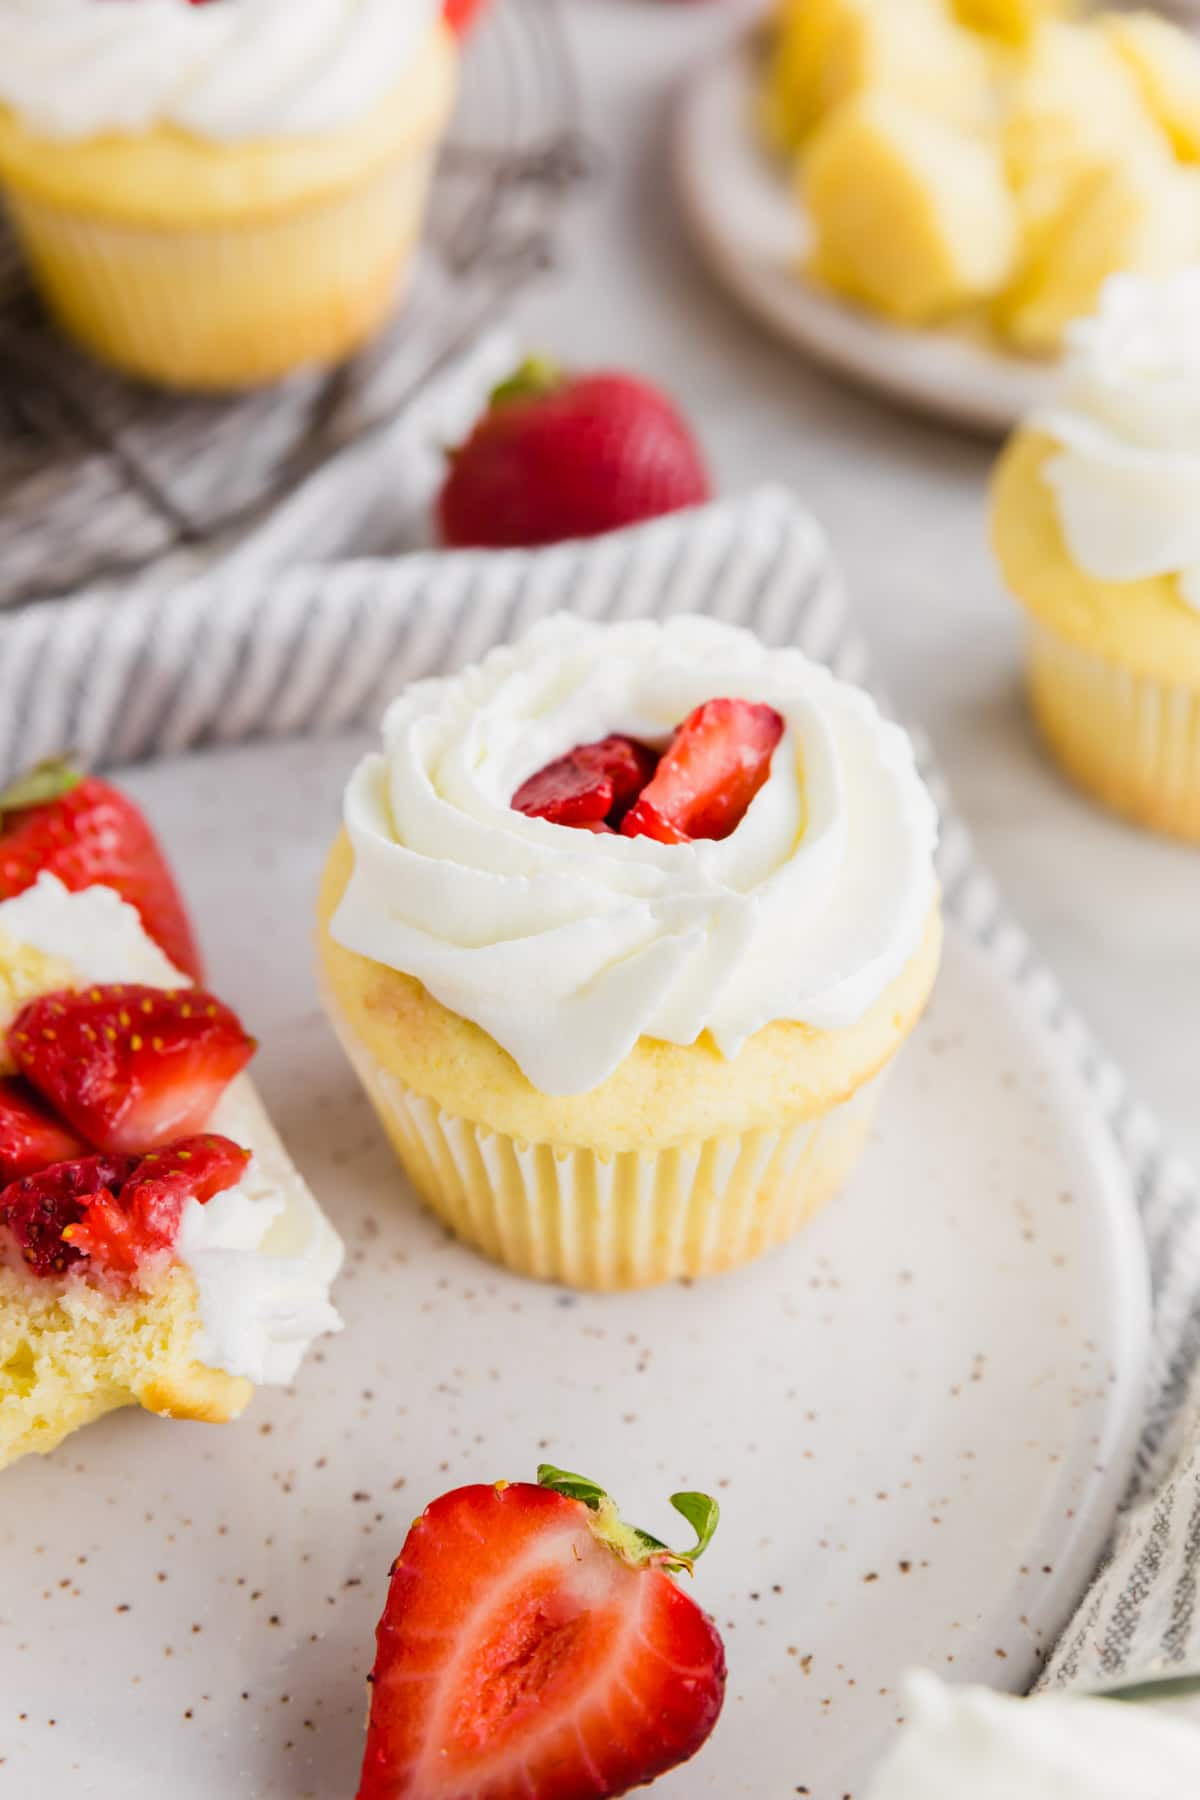 A photo of a strawberry shortcake cupcake topped with fresh whipped cream on a plate.